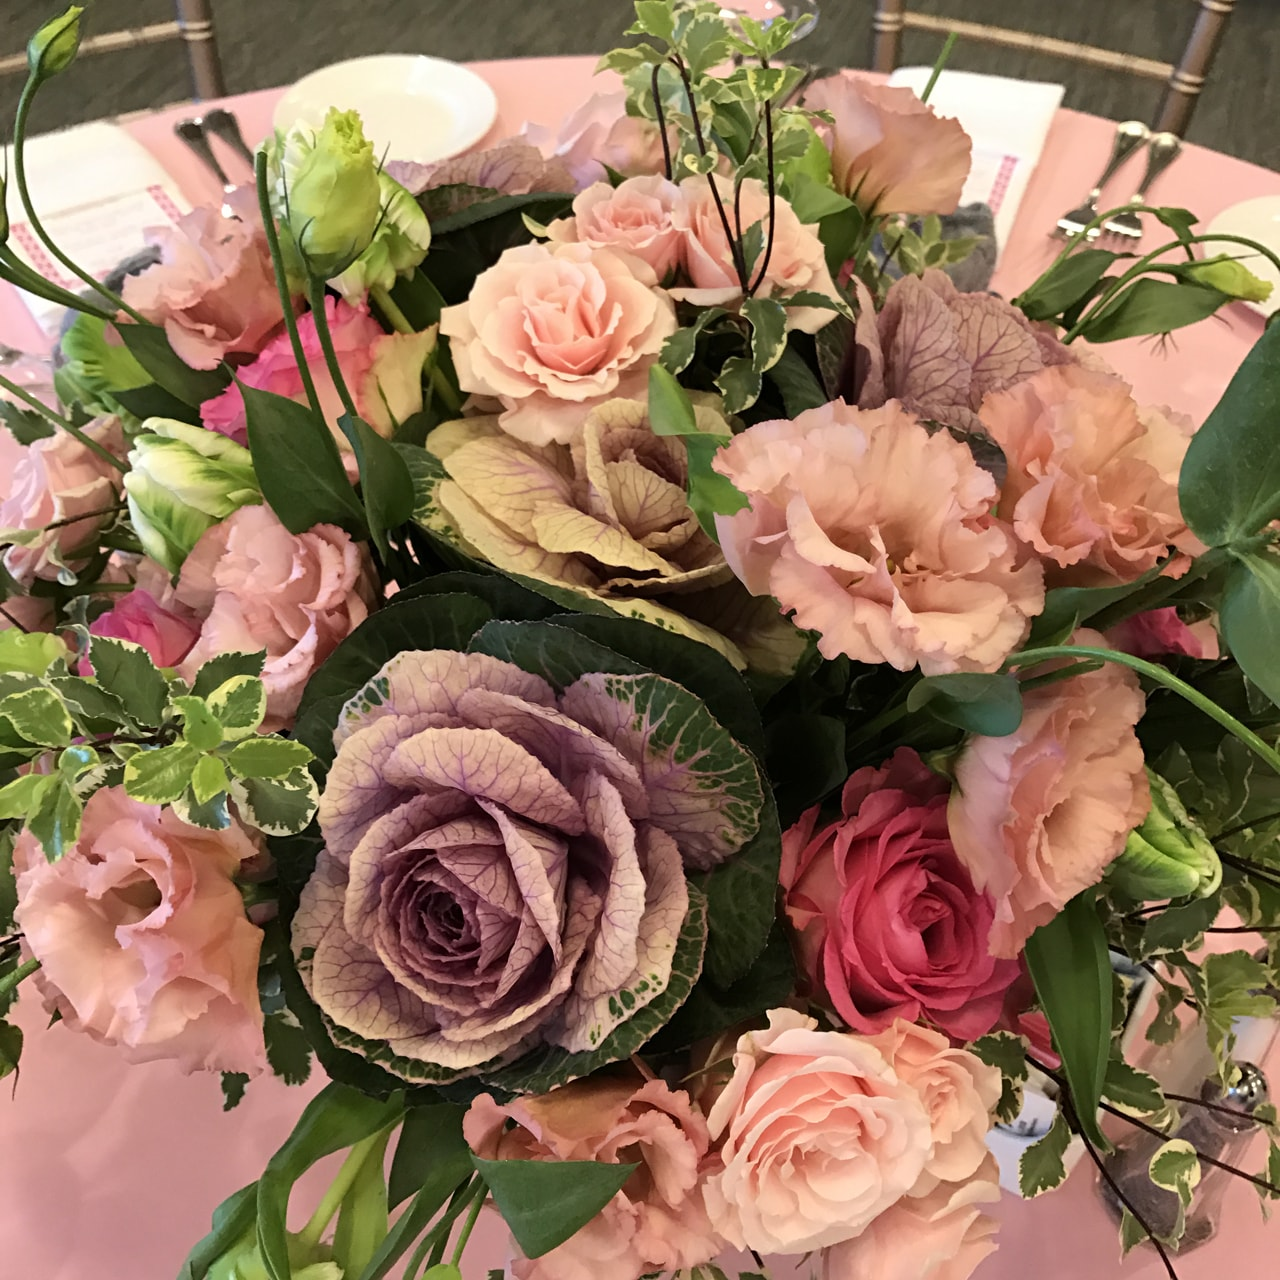 Elegant Effects in Floral Design - Wedding  Centerpiece